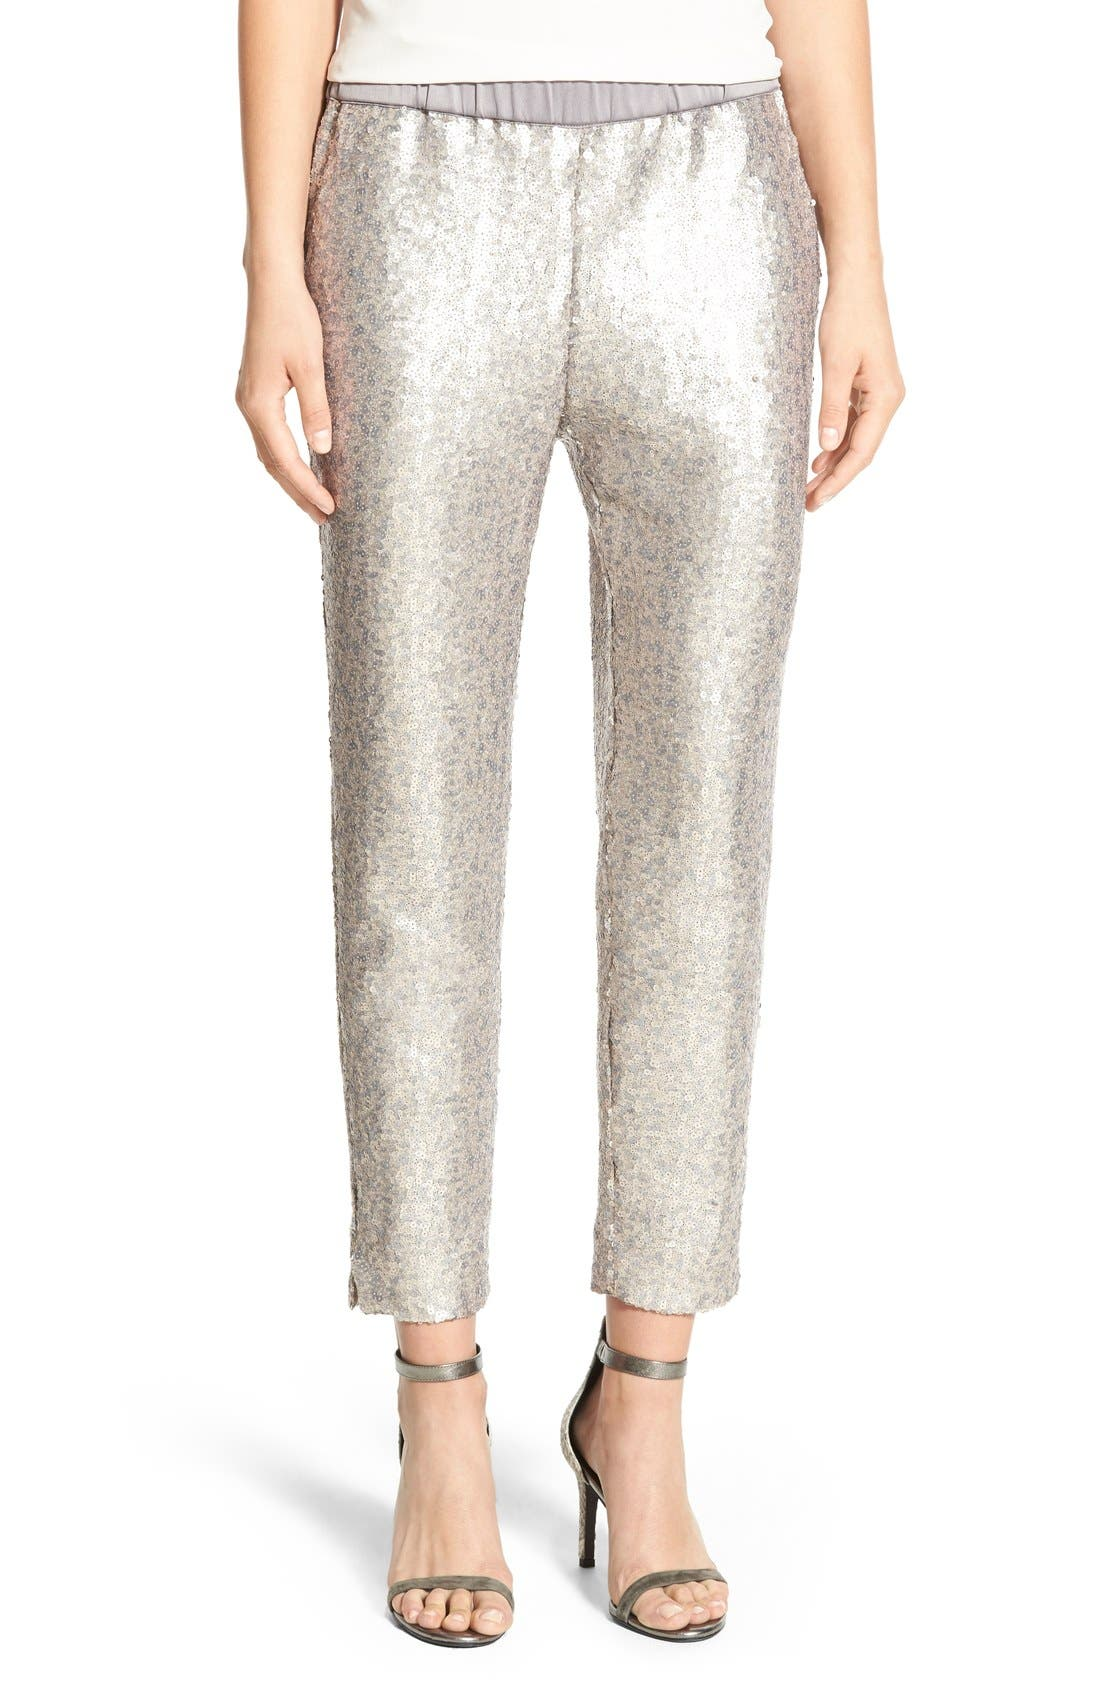 Alternate Image 1 Selected - Chelsea28 Sequin Pants